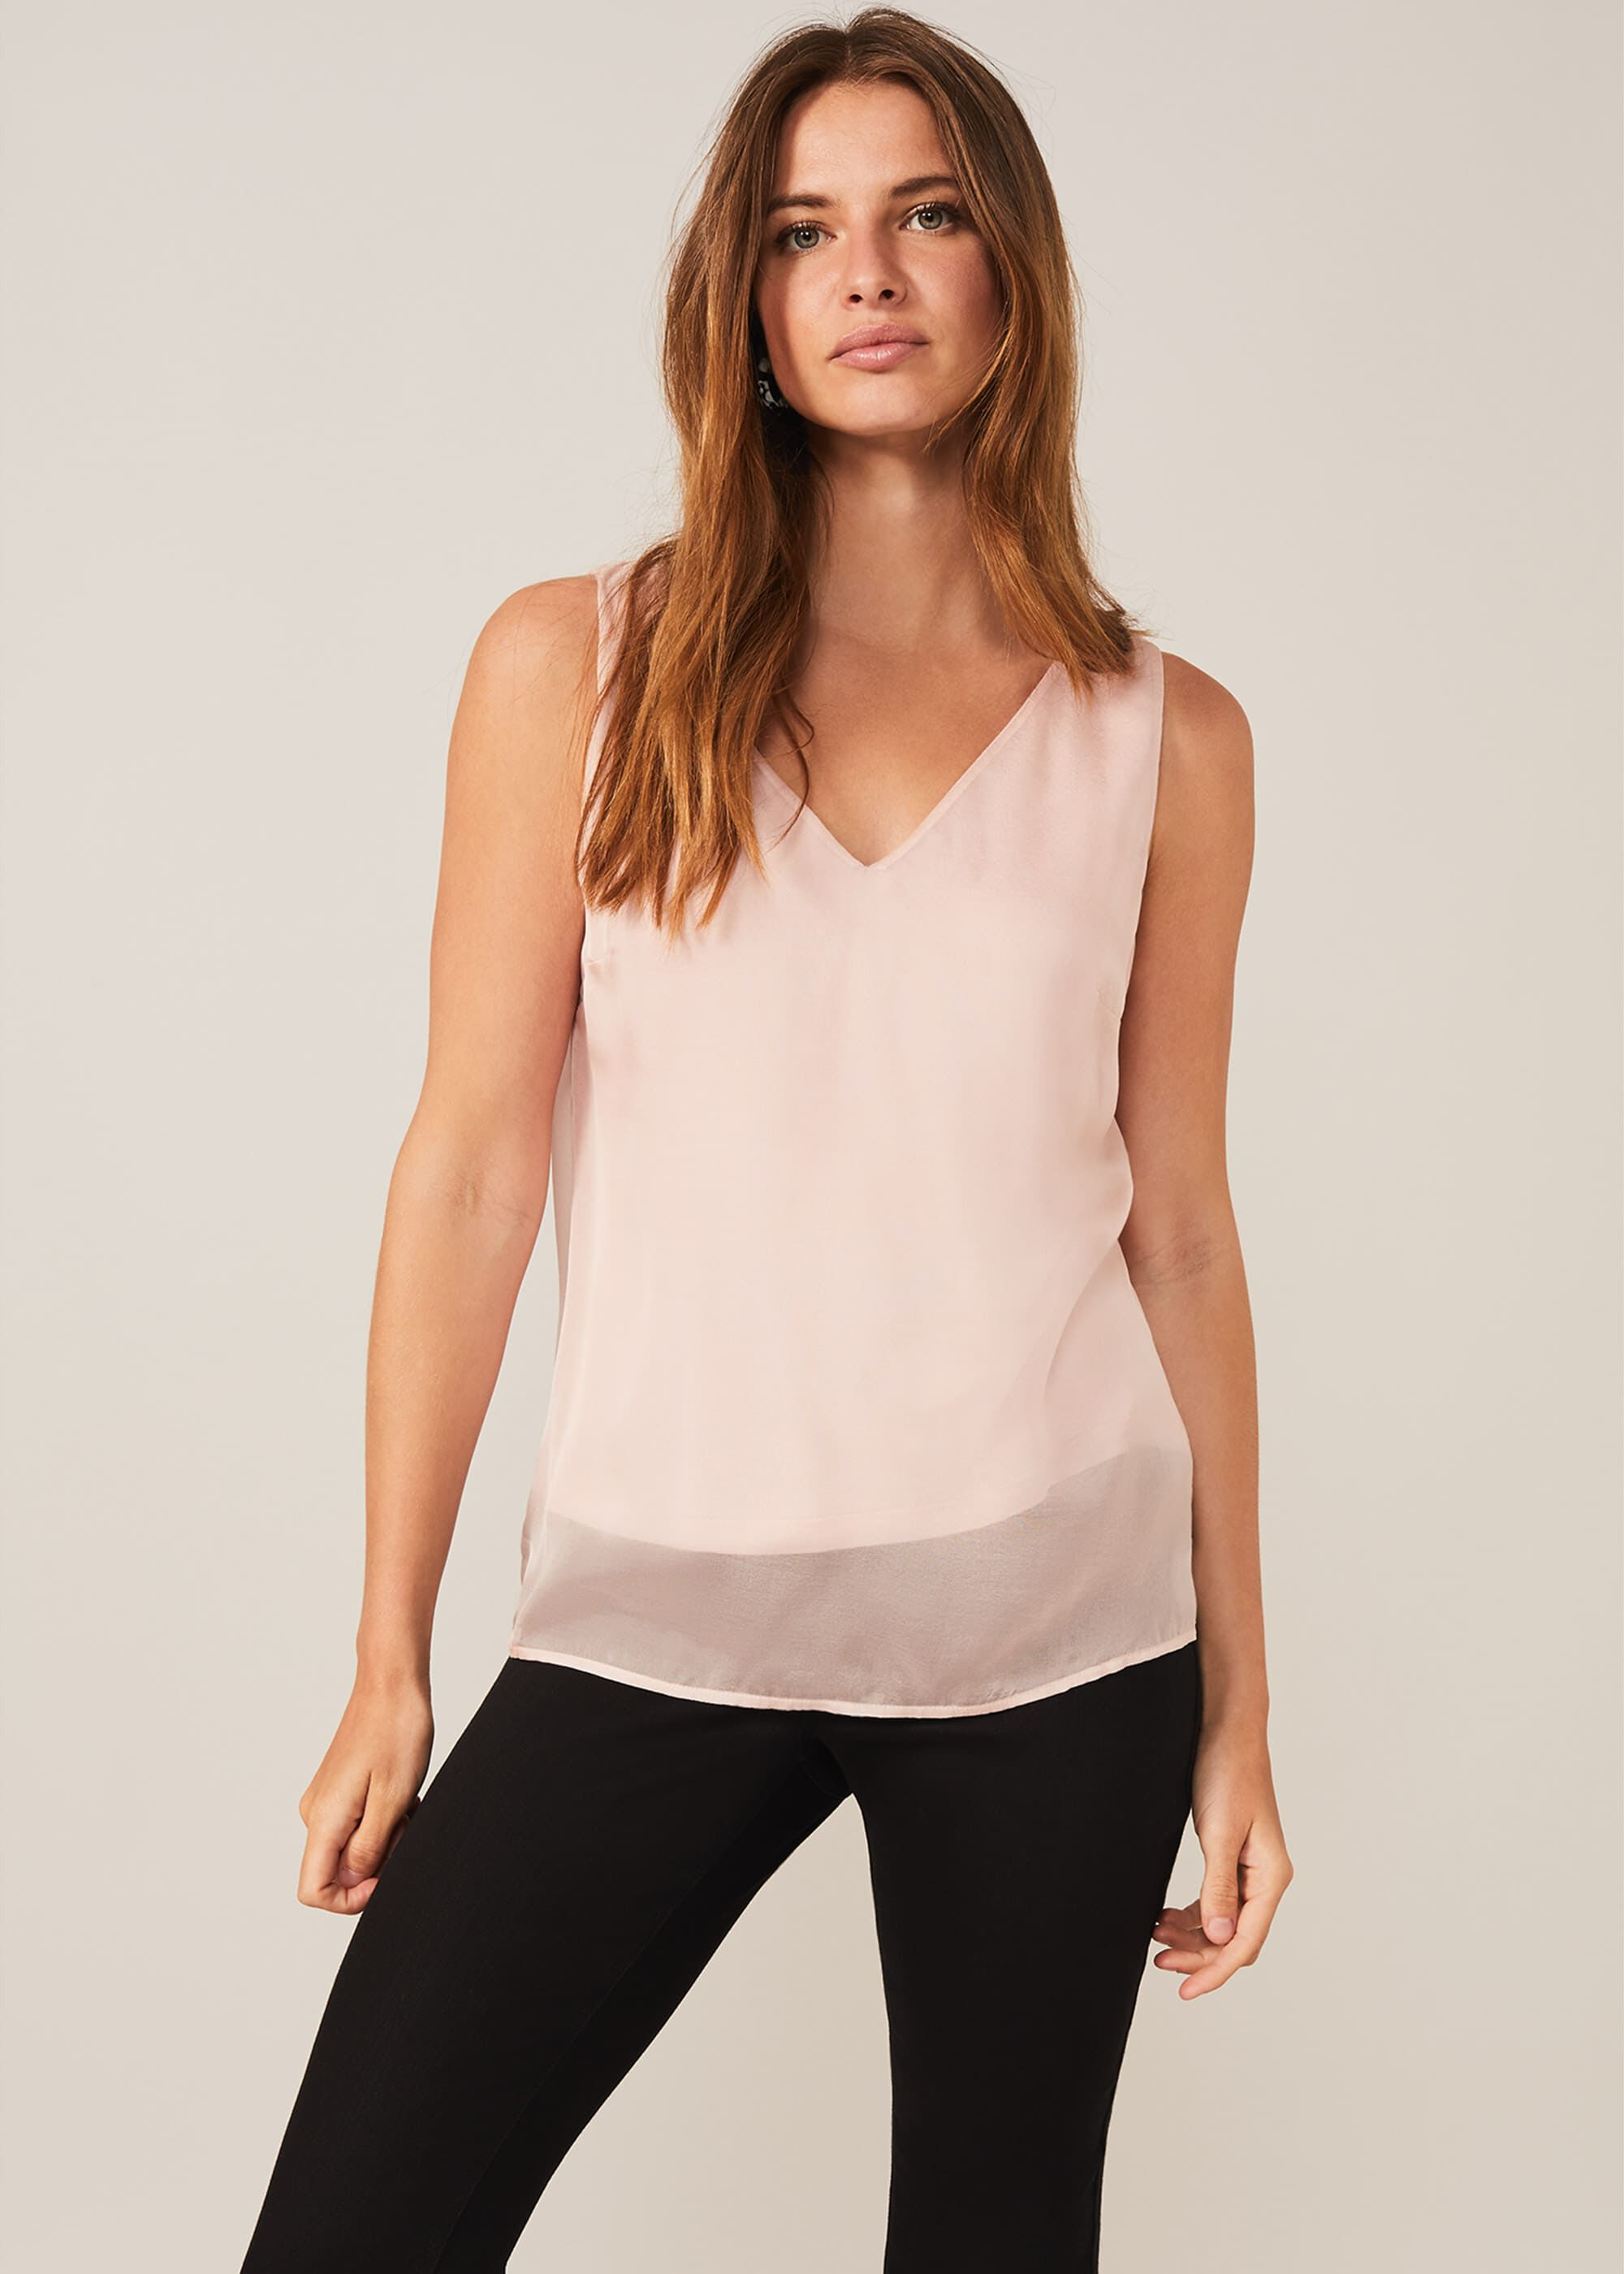 Phase Eight Silk Vest, Pink, Blouse